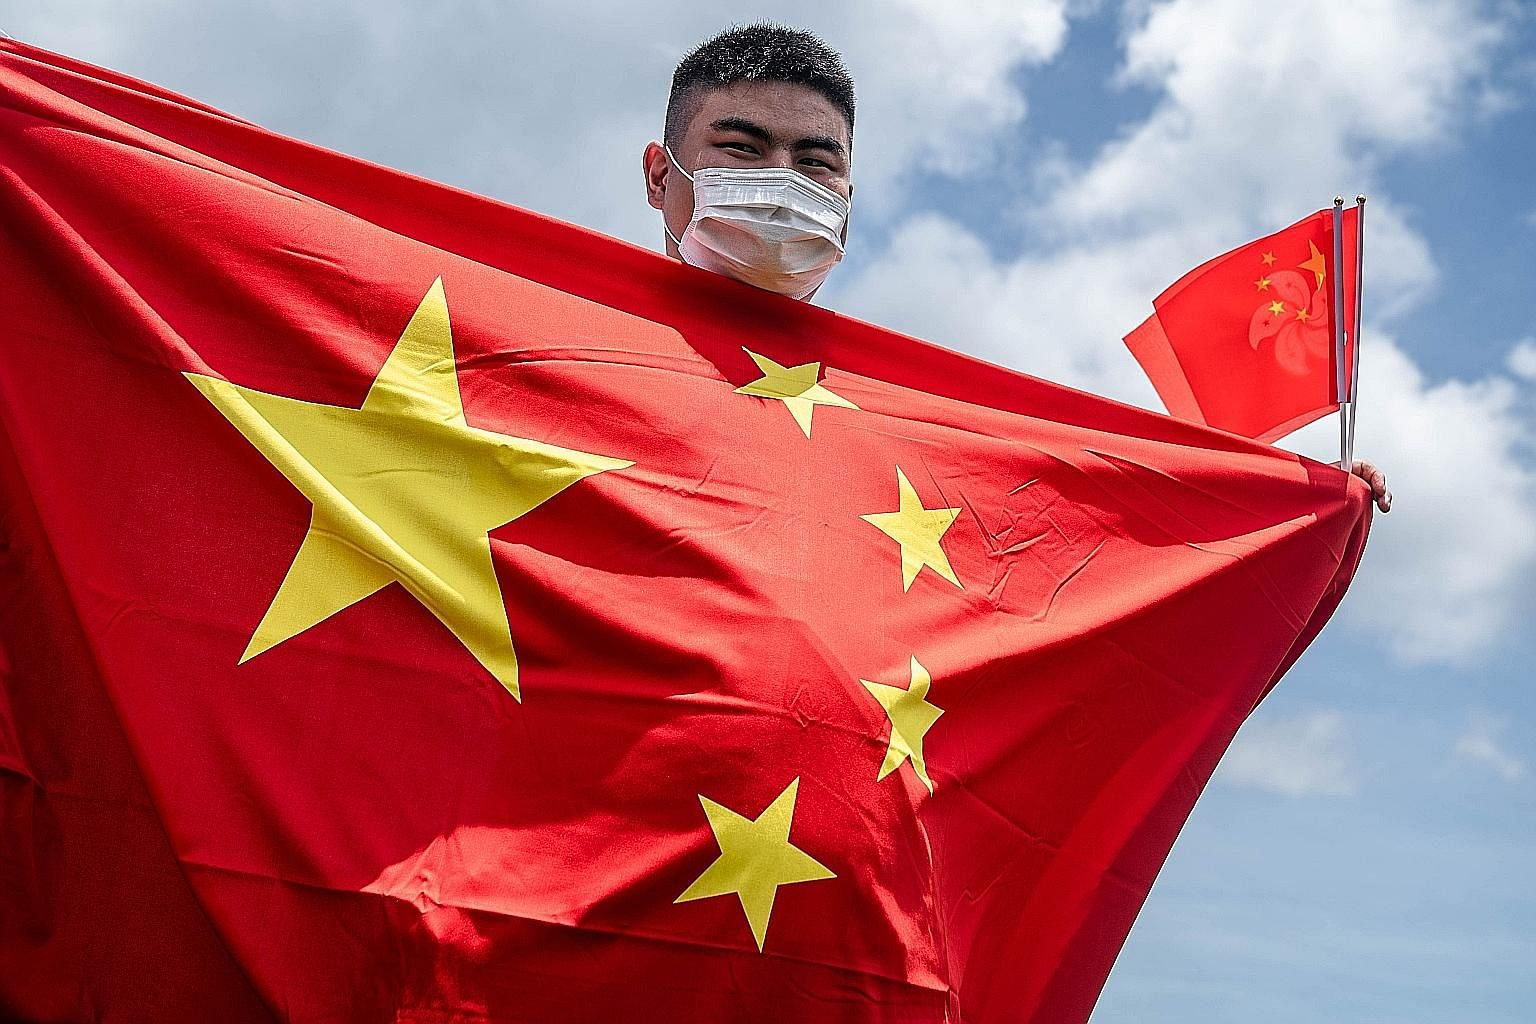 A Chinese government supporter holding the flags of China and Hong Kong to mark the passing of the new national security law. PHOTO: BLOOMBERG